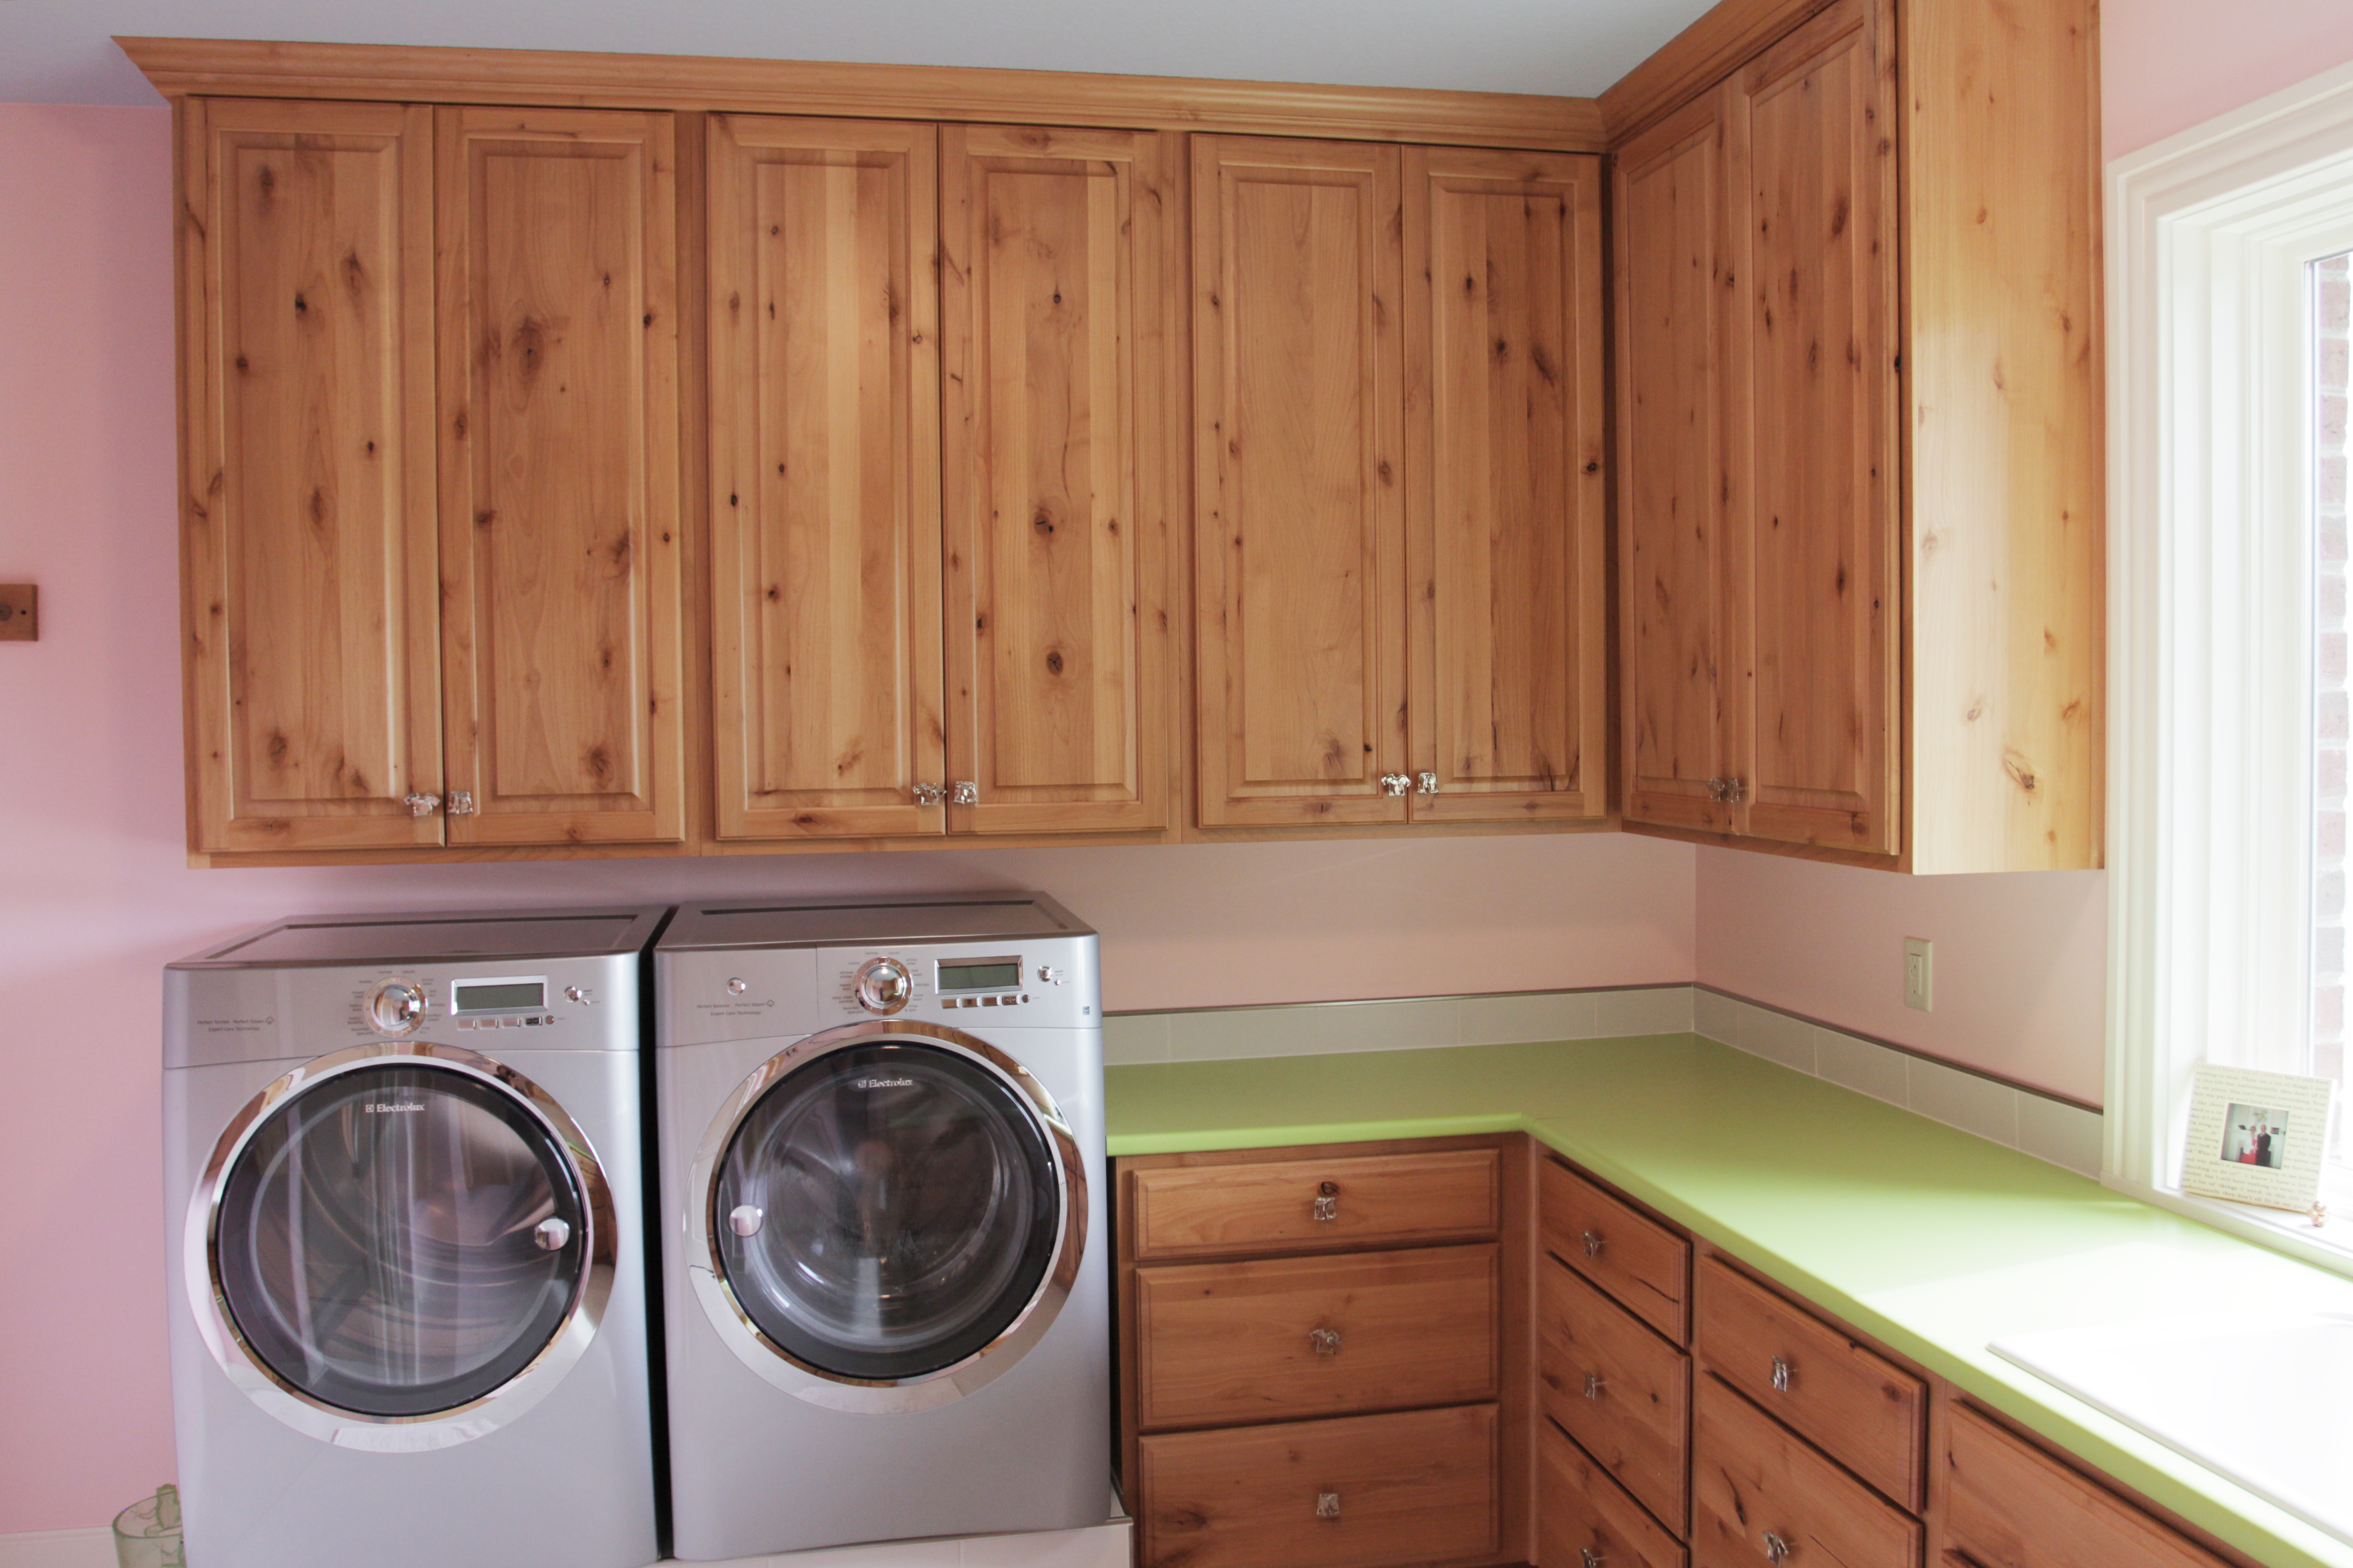 Cabinet Material In Laundry Rooms Cabinets By Graber